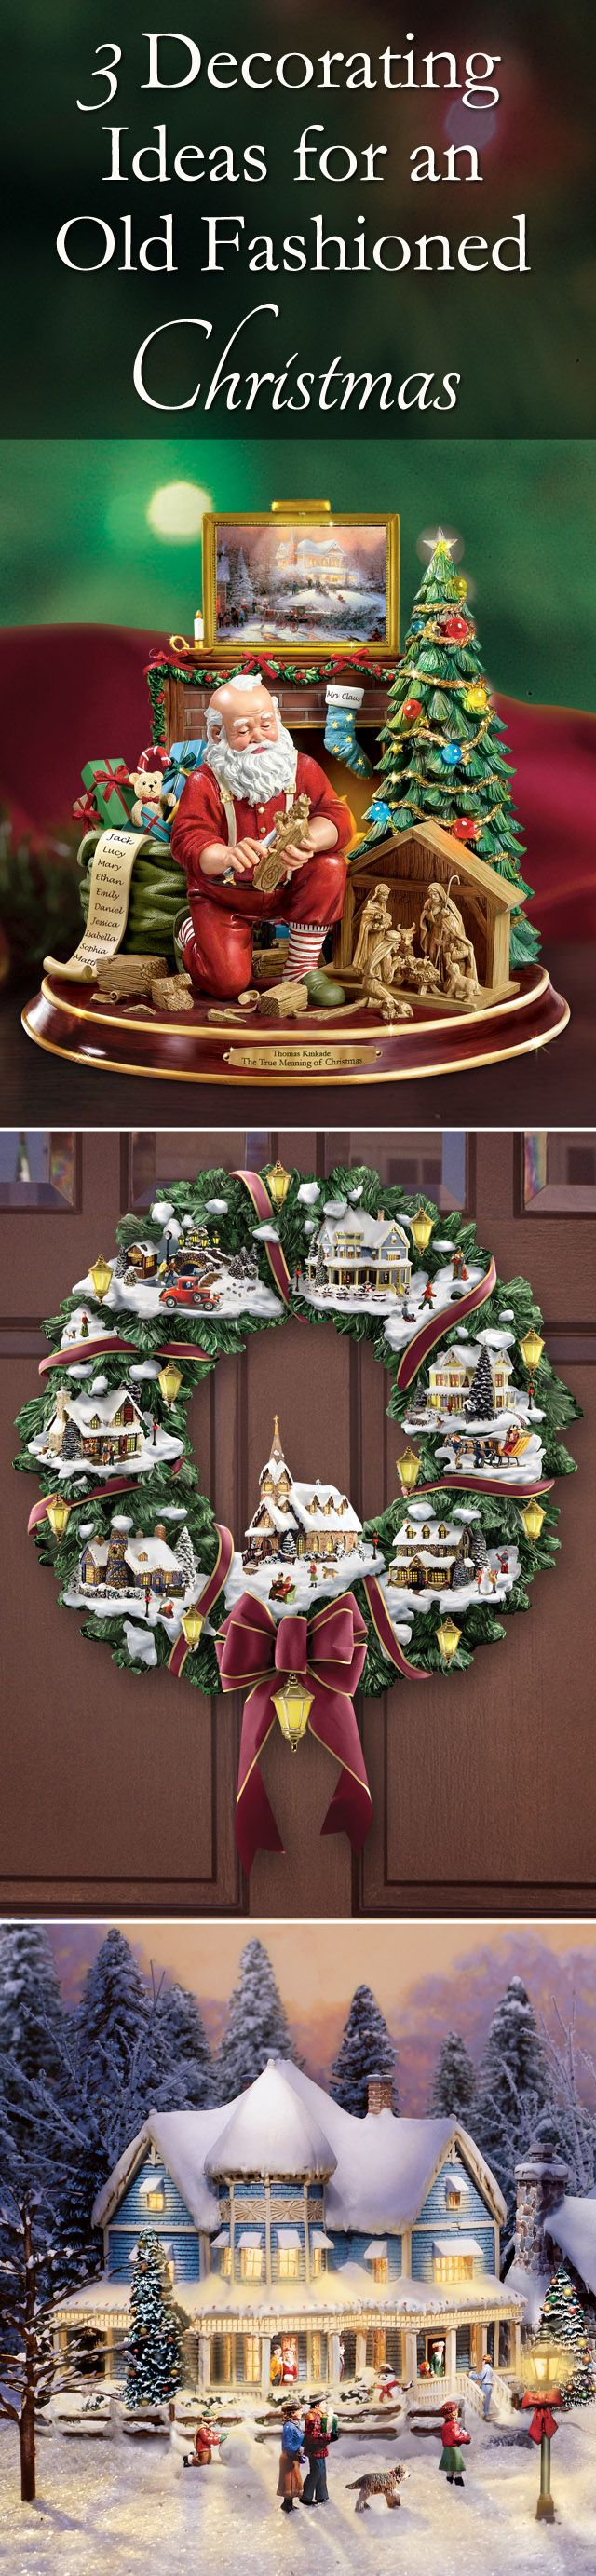 Add a nostalgic touch to your holiday display with Christmas decor that harkens back to simpler times. We offer a wide selection of festive wreaths, table centerpieces, wall decor and more, sure to bring the warmth and beauty of a traditional Christmas to your home.